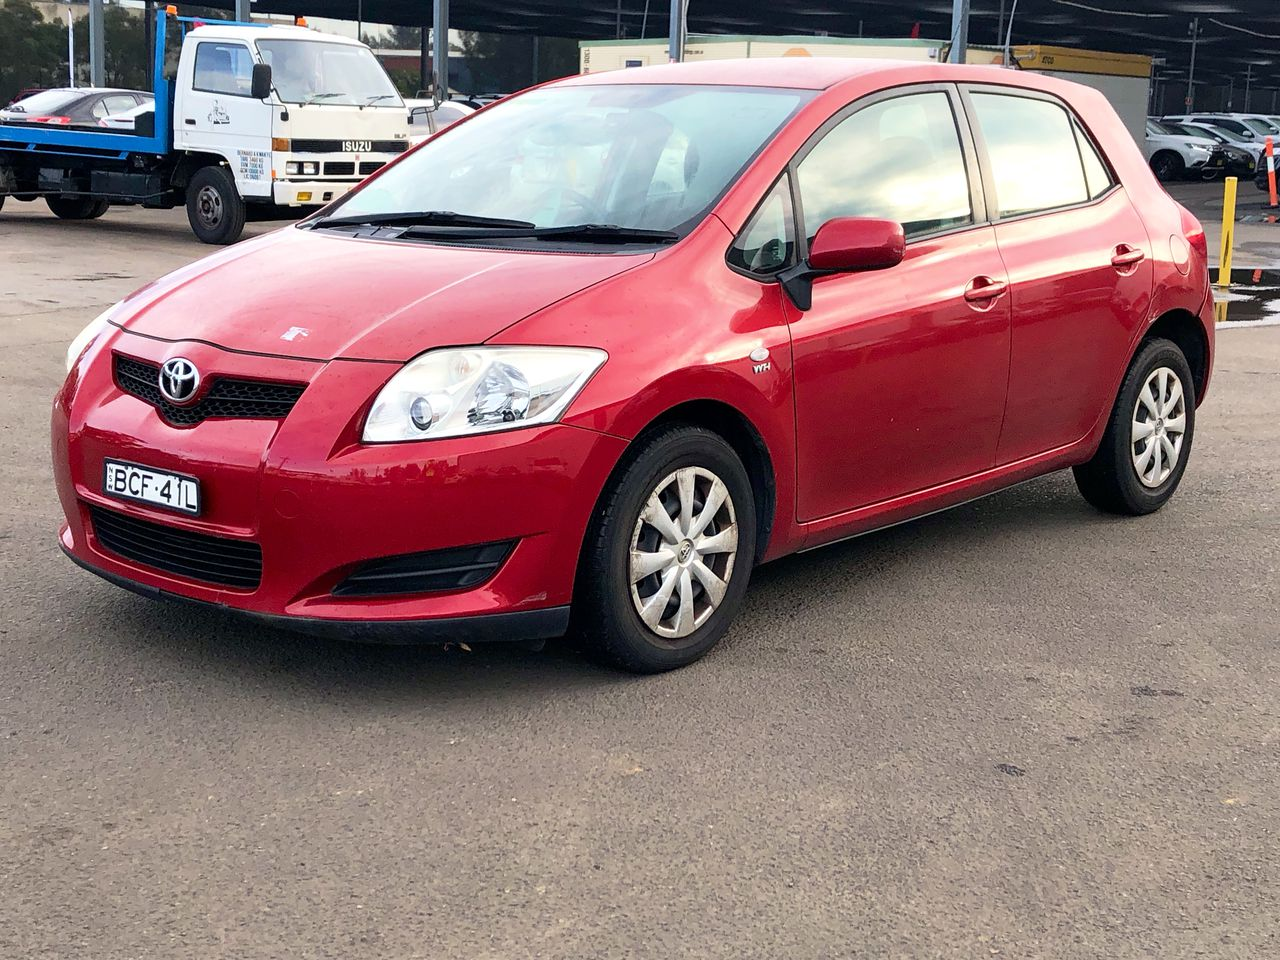 2007 Toyota Corolla Ascent Hatch, Auto, 108,116 kms